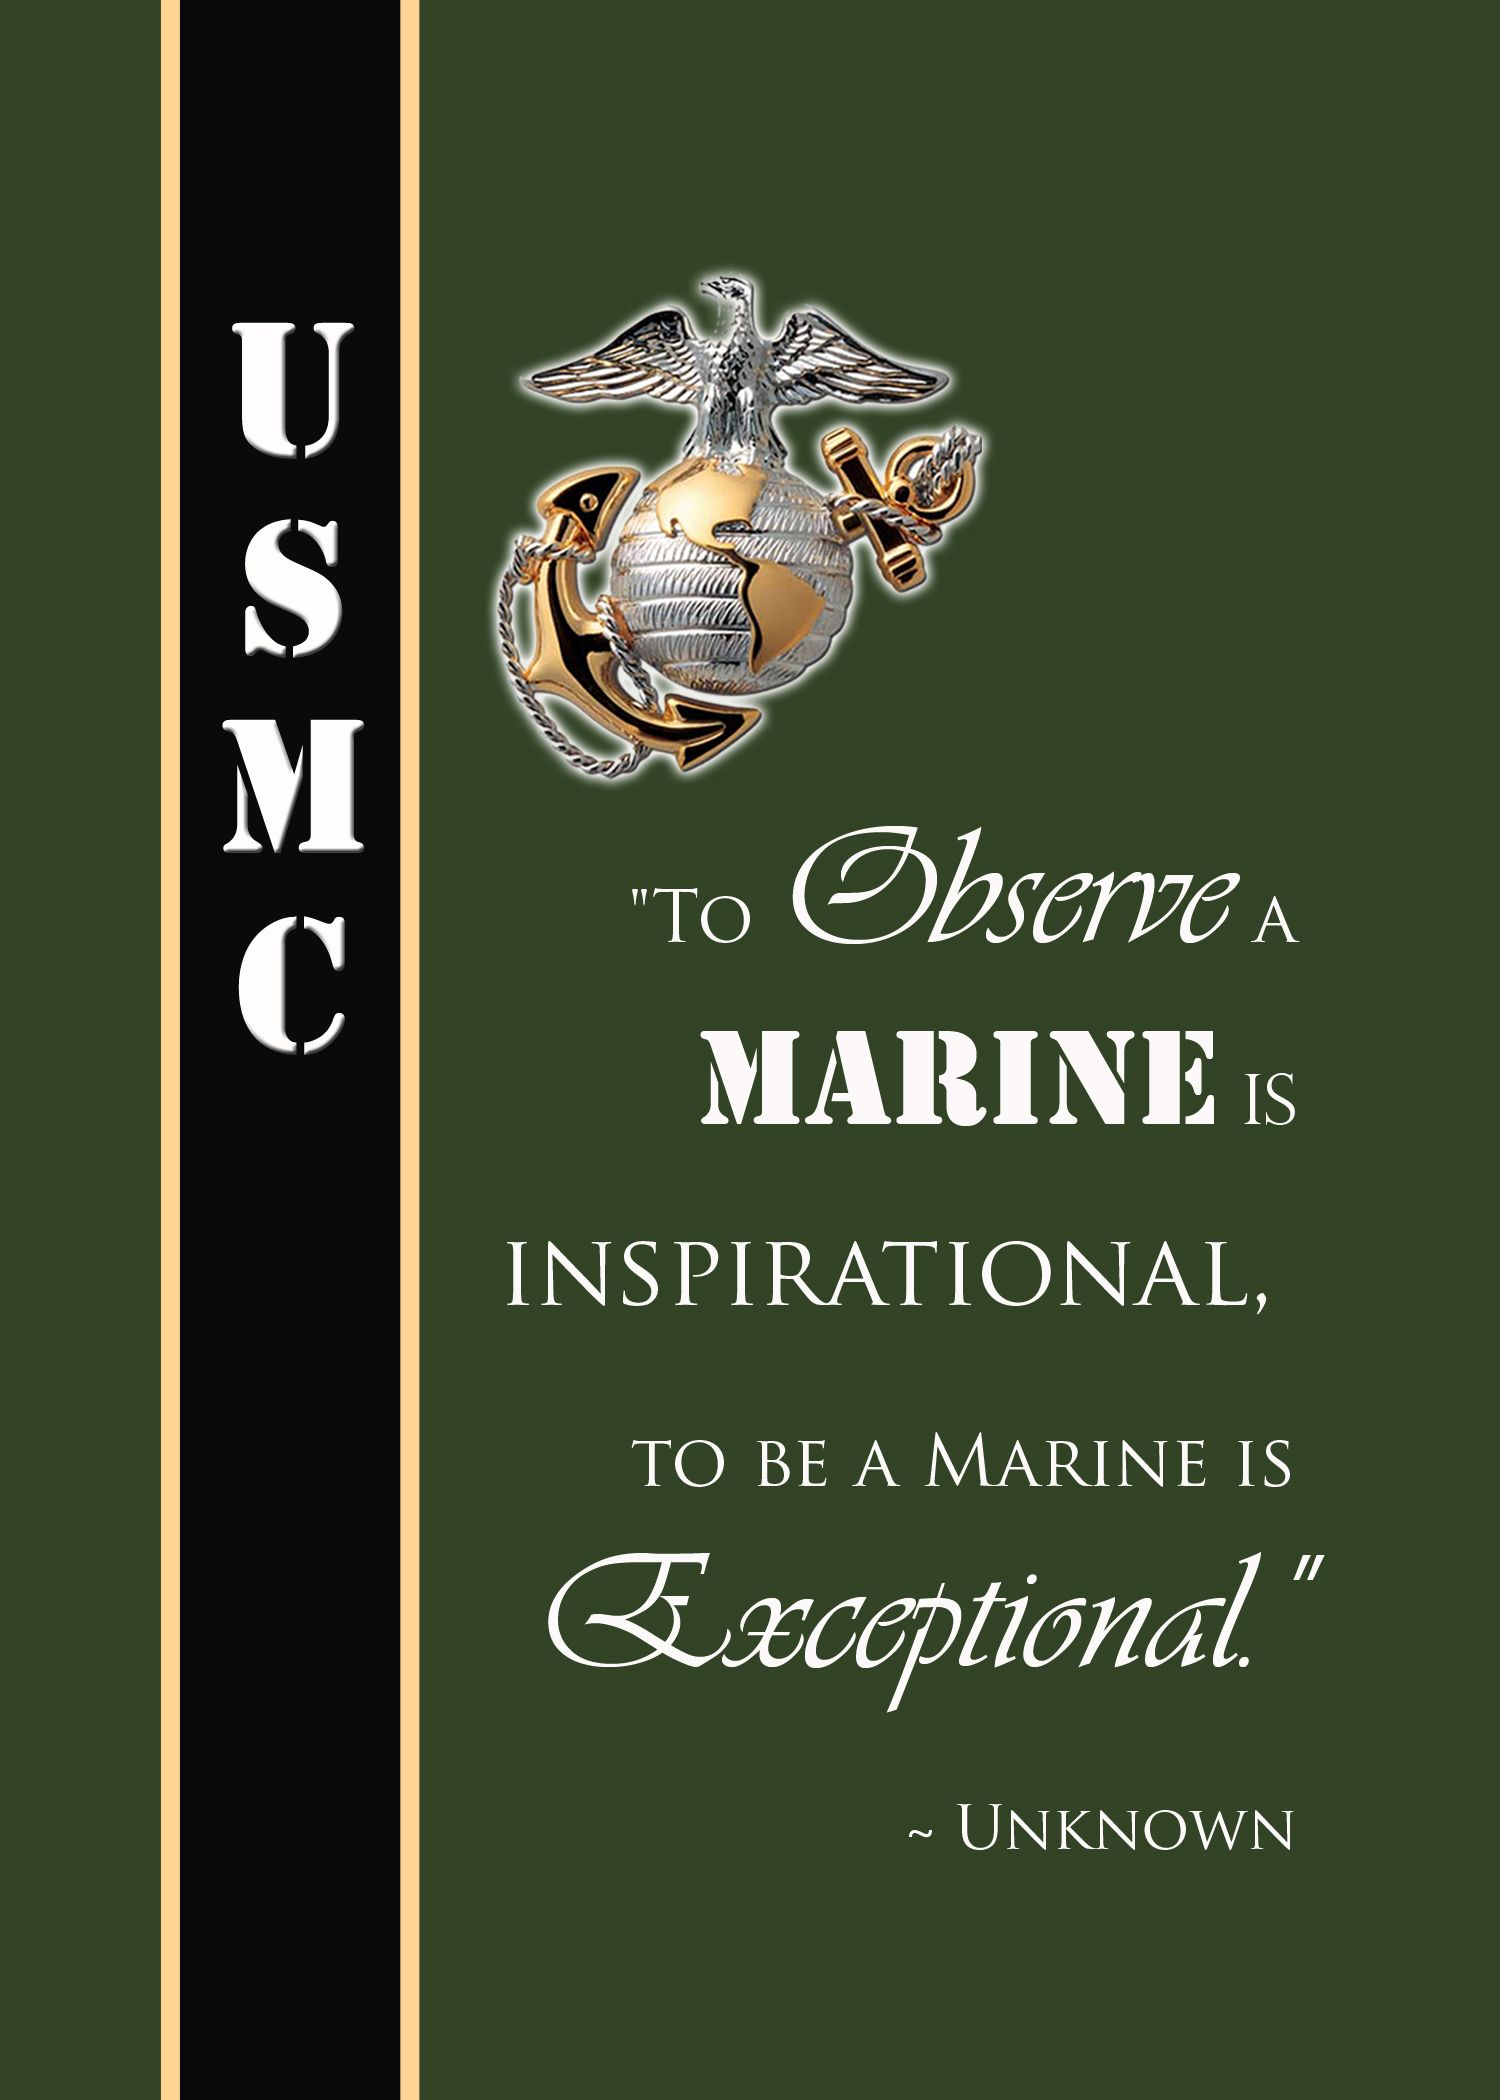 Marines Quotes Glamorous Famous Marine Quoteto Observe A Marine Is Inspirational To Be A . Design Ideas